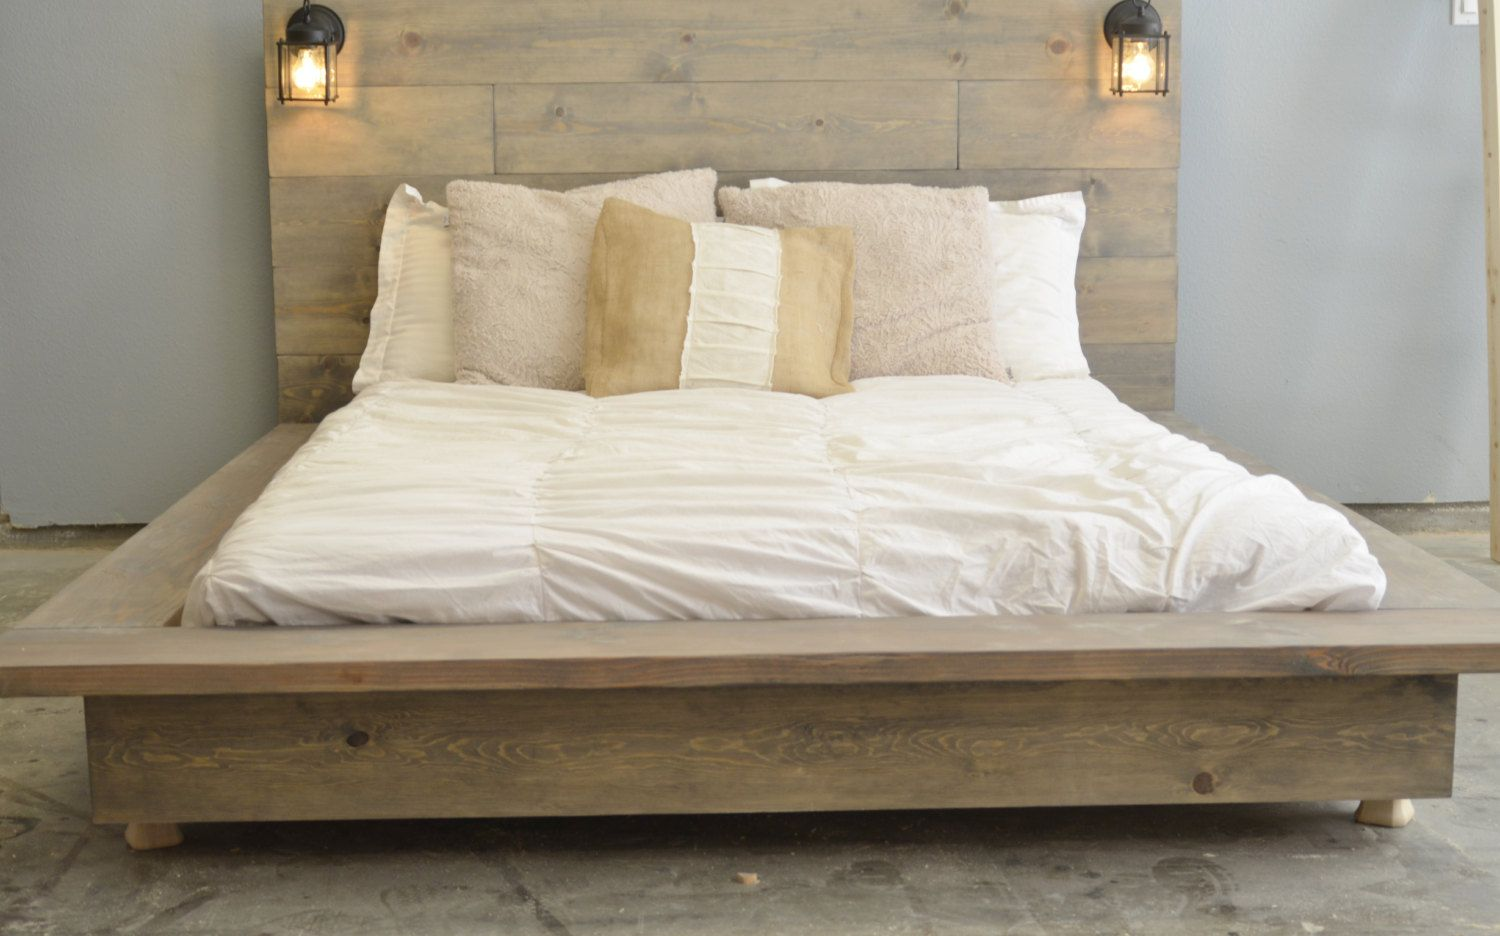 Floating Wood Platform Bed frame with Lighted by